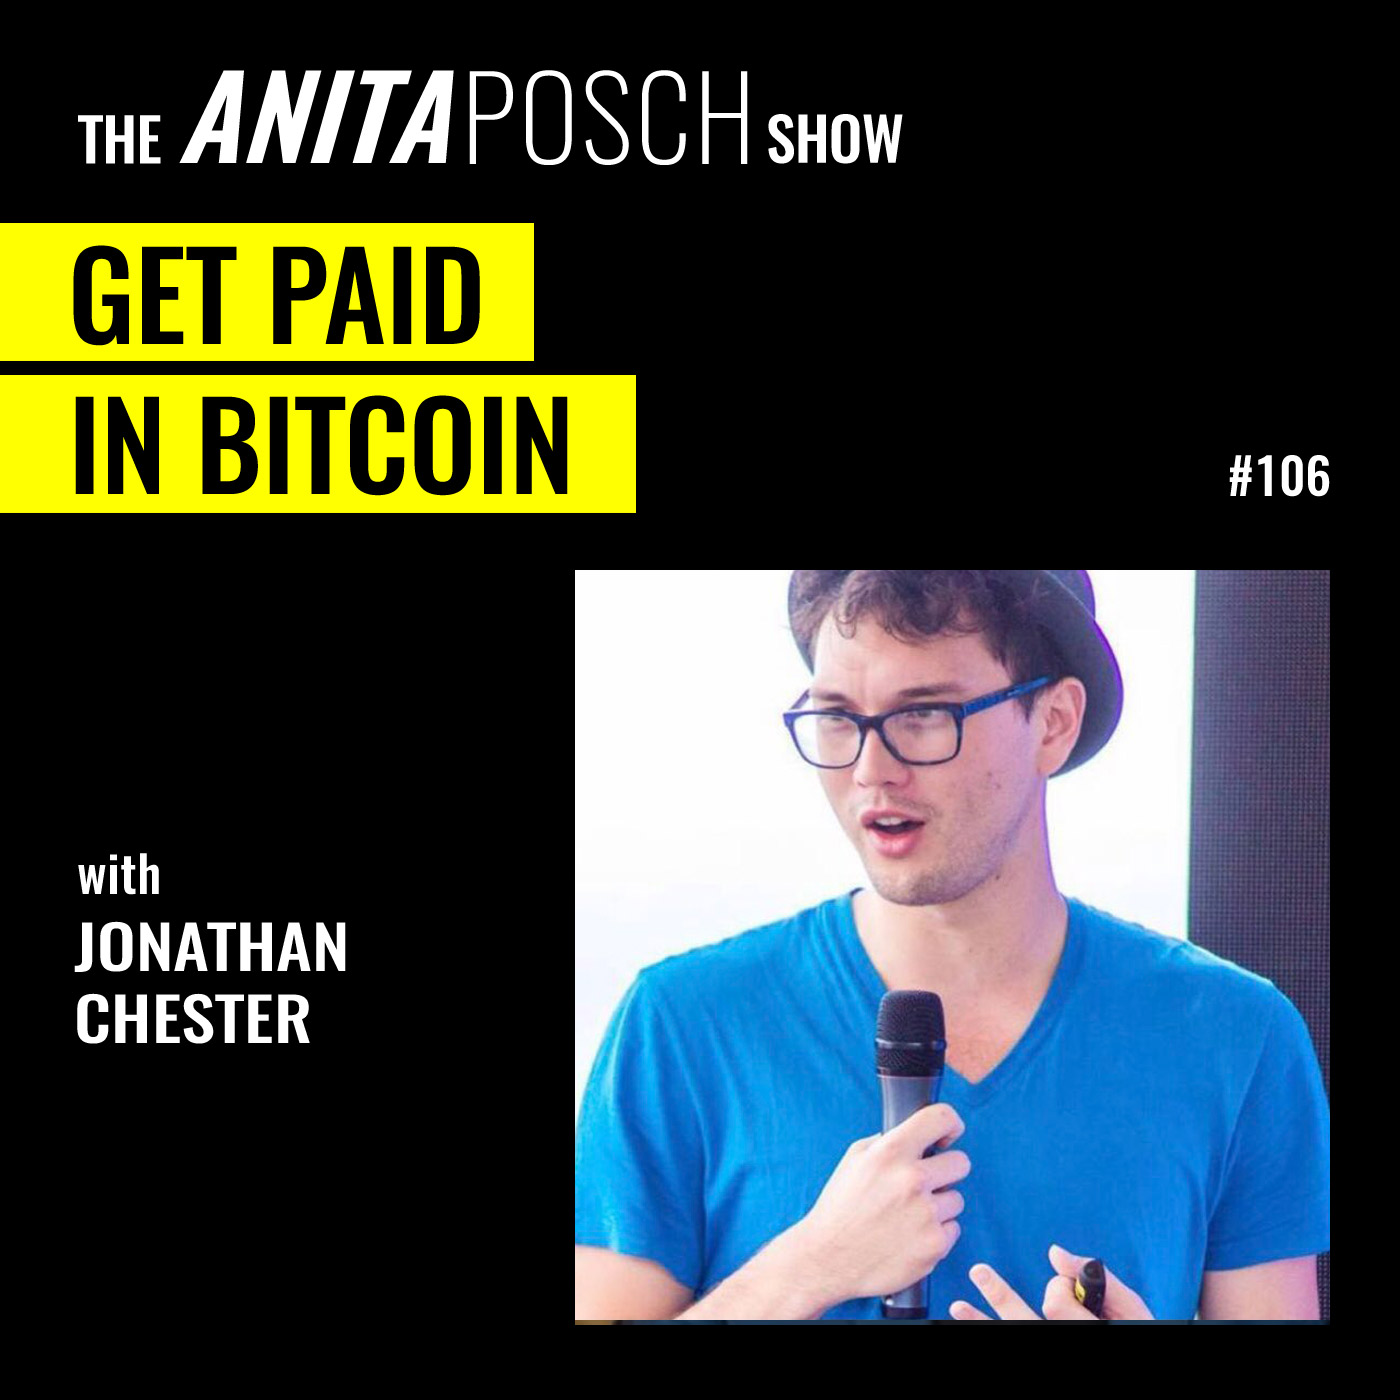 Jonathan Chester: Get Paid in Bitcoin